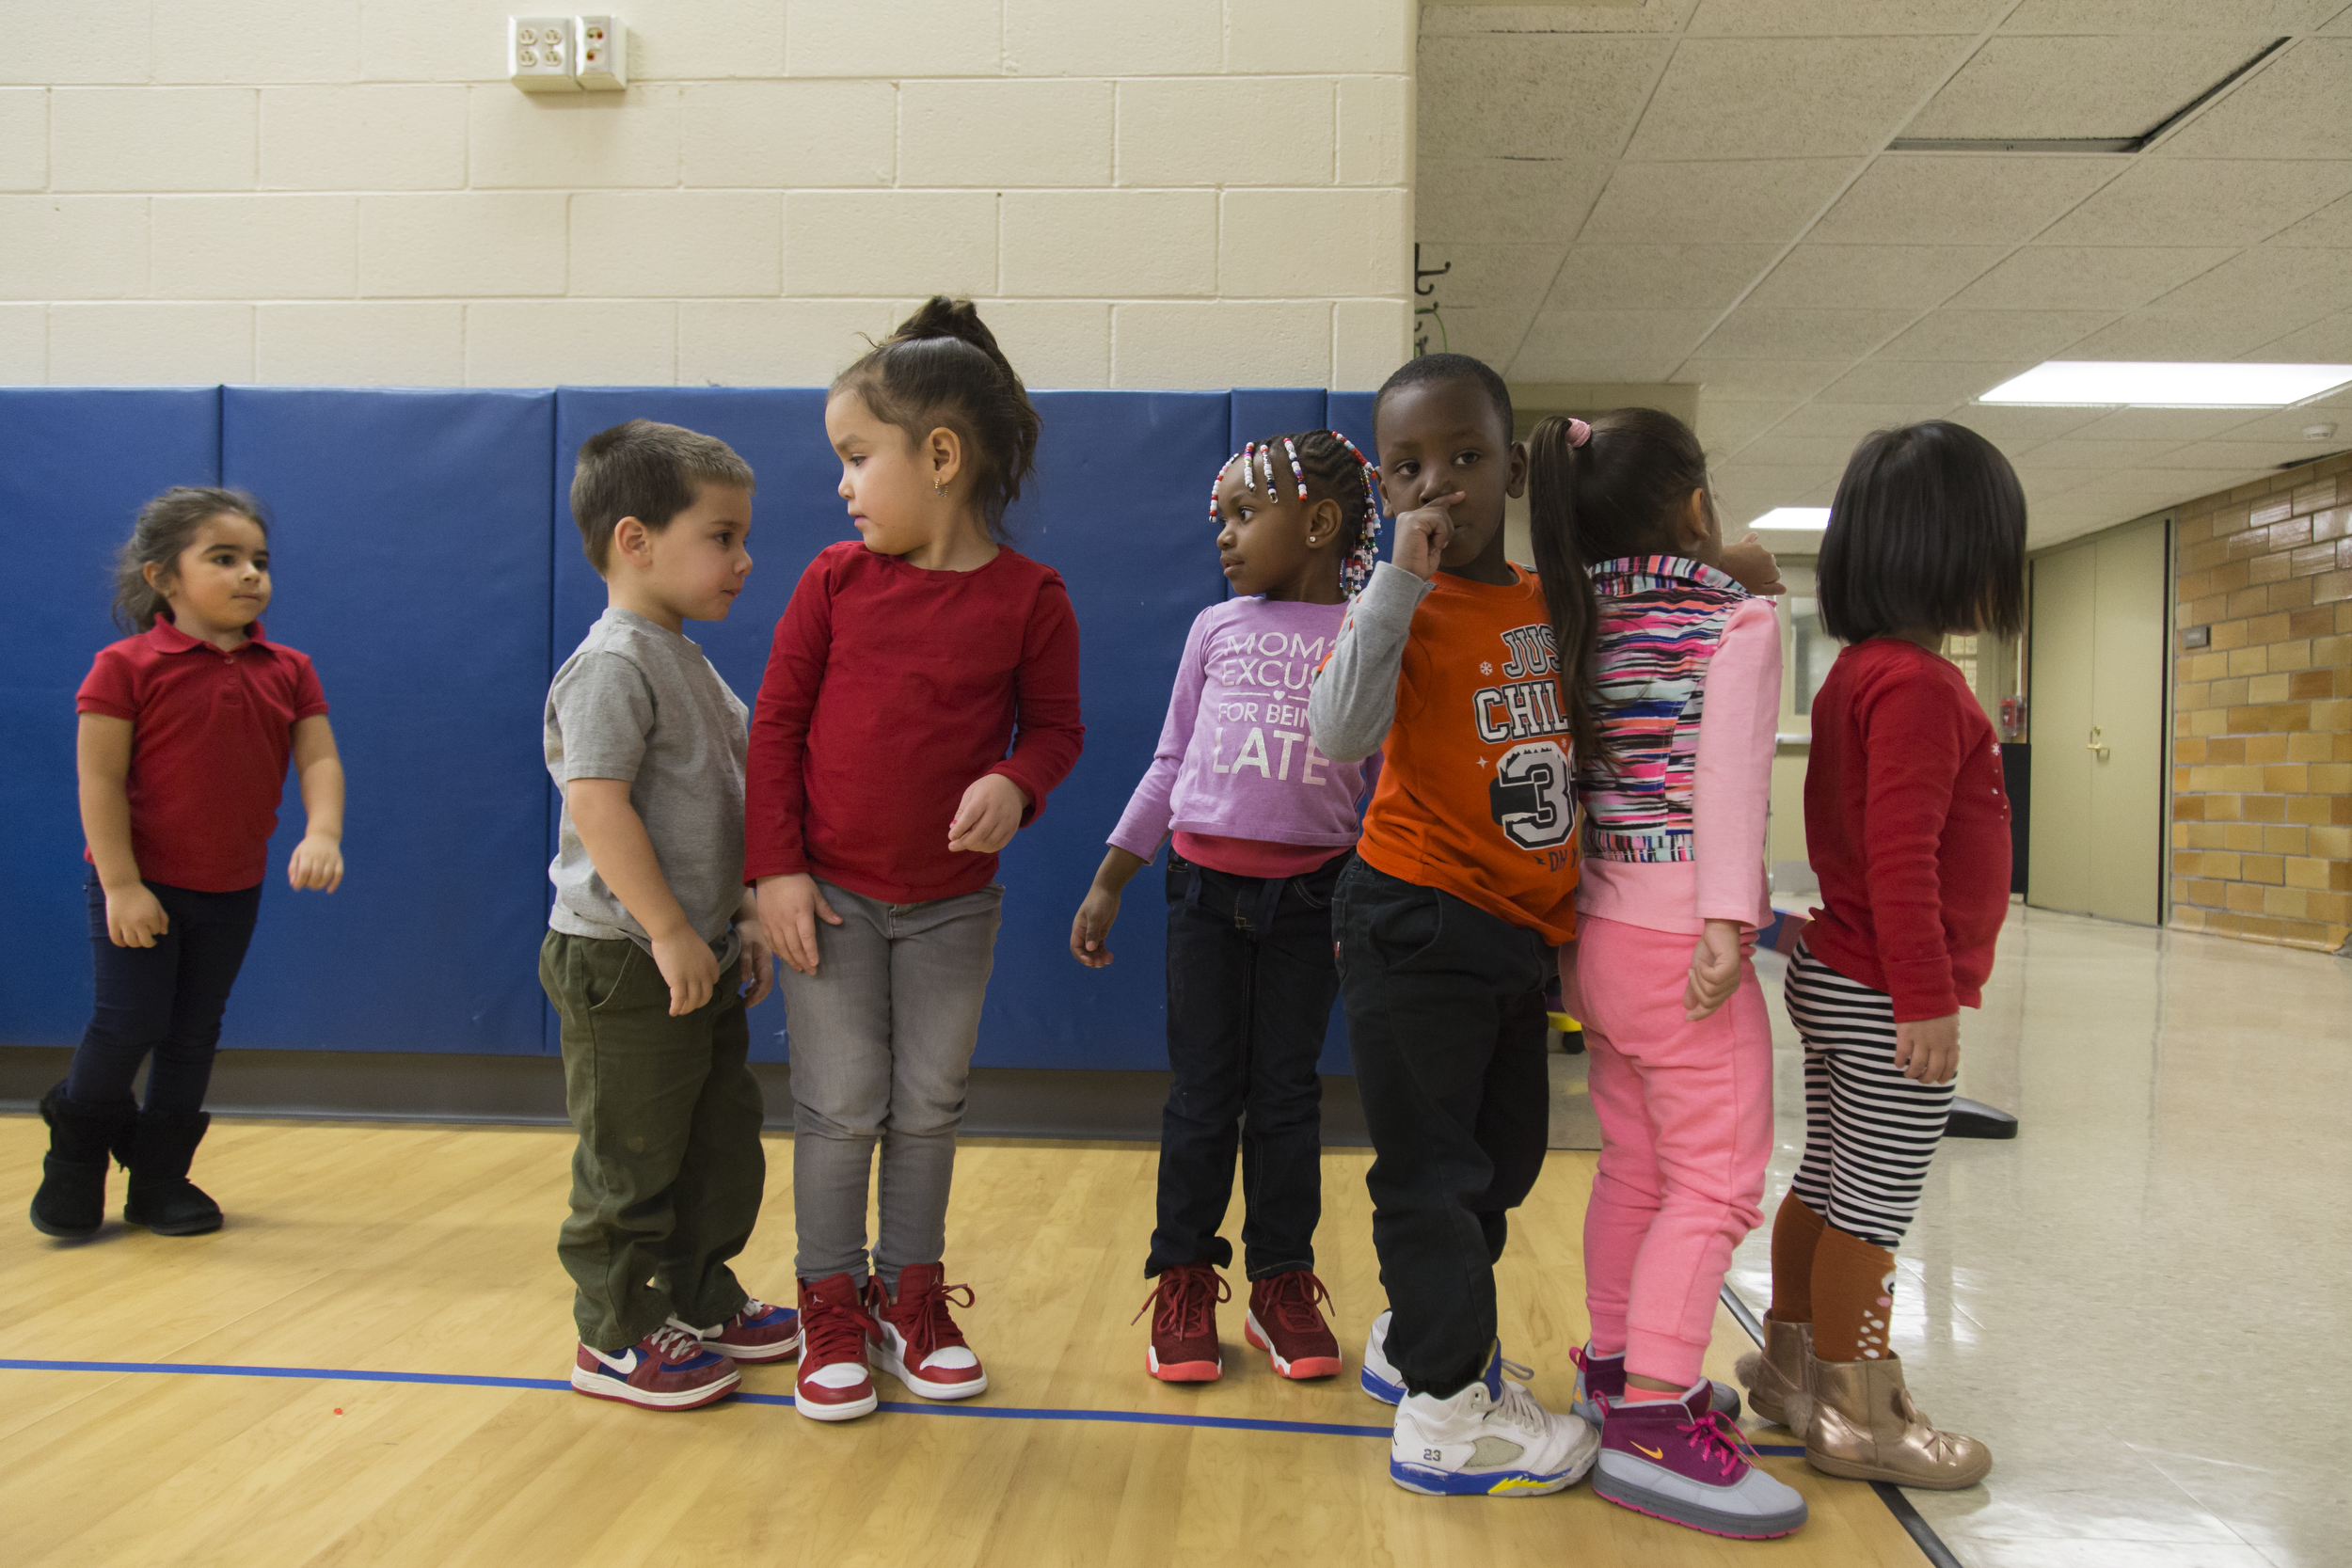 Children of Ms. Herne's preschool class wait in line after before heading back upstairs to their classroom.